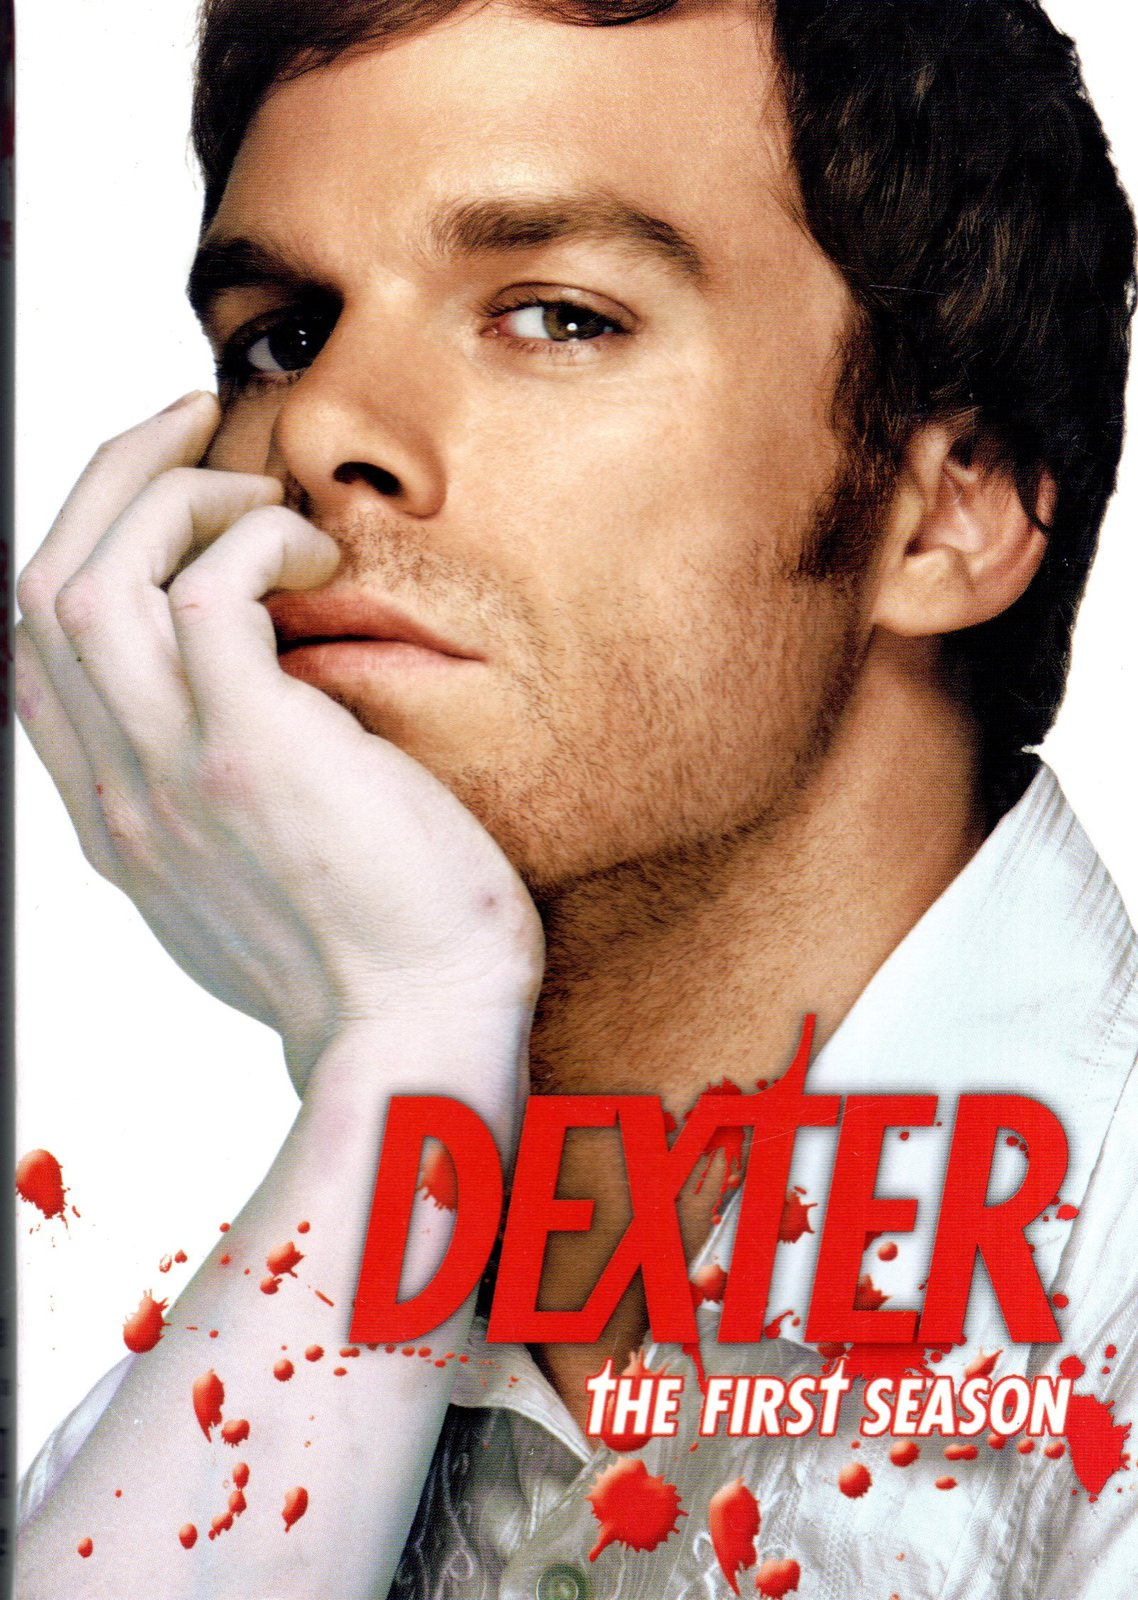 DVD - Dexter: The First Season (Complete Set Disc 1 to 4)